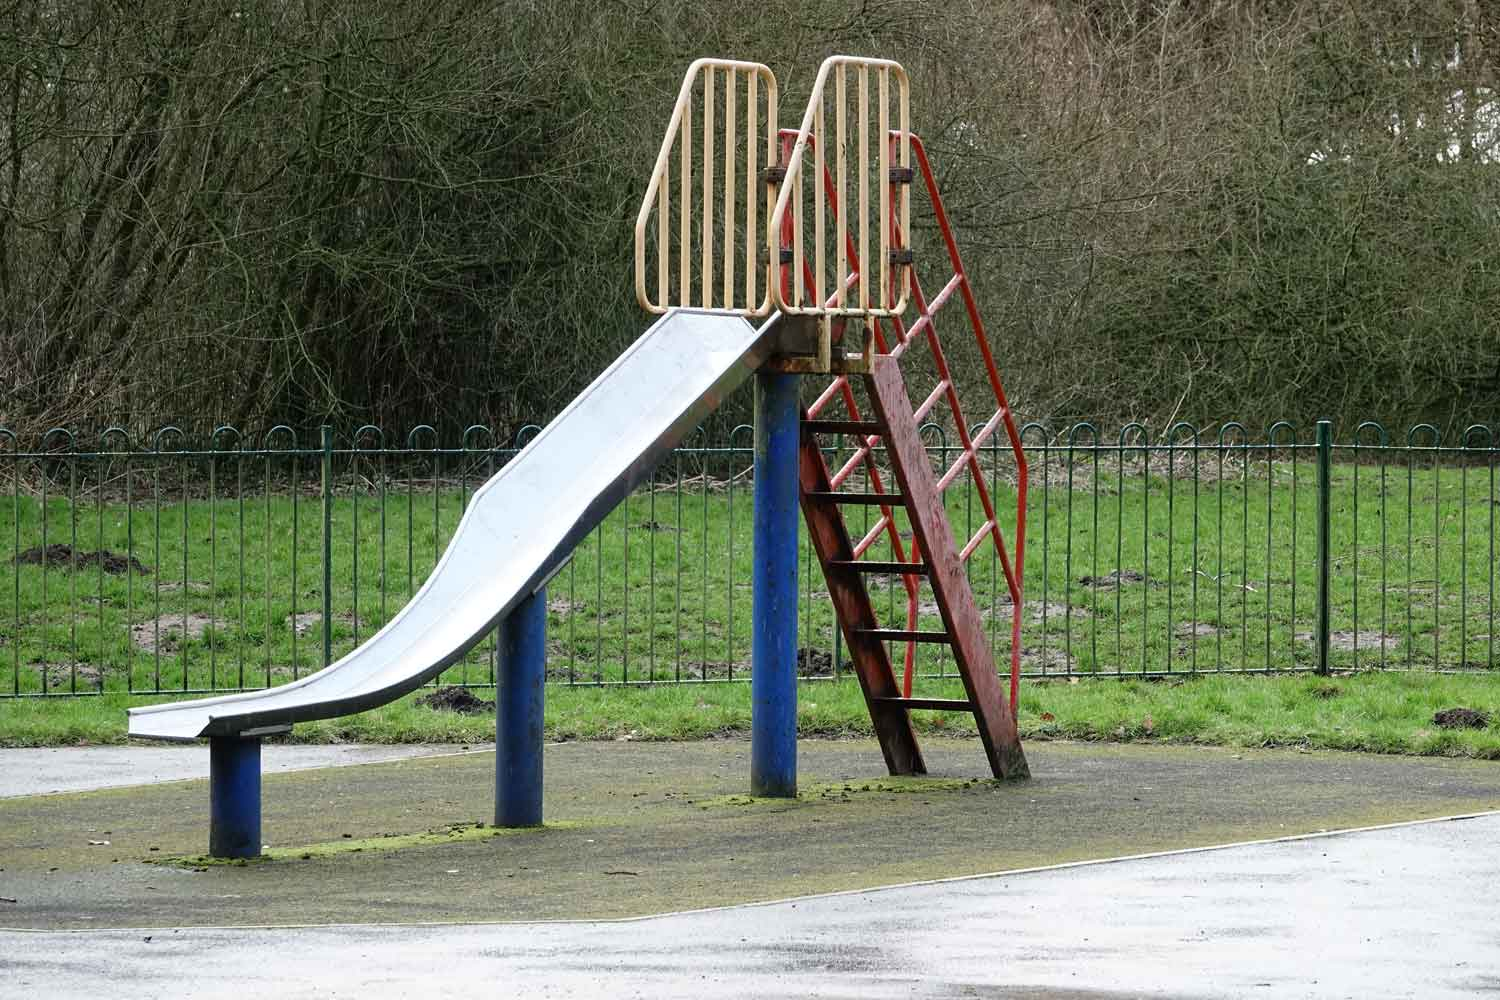 Harrogate Knox playground